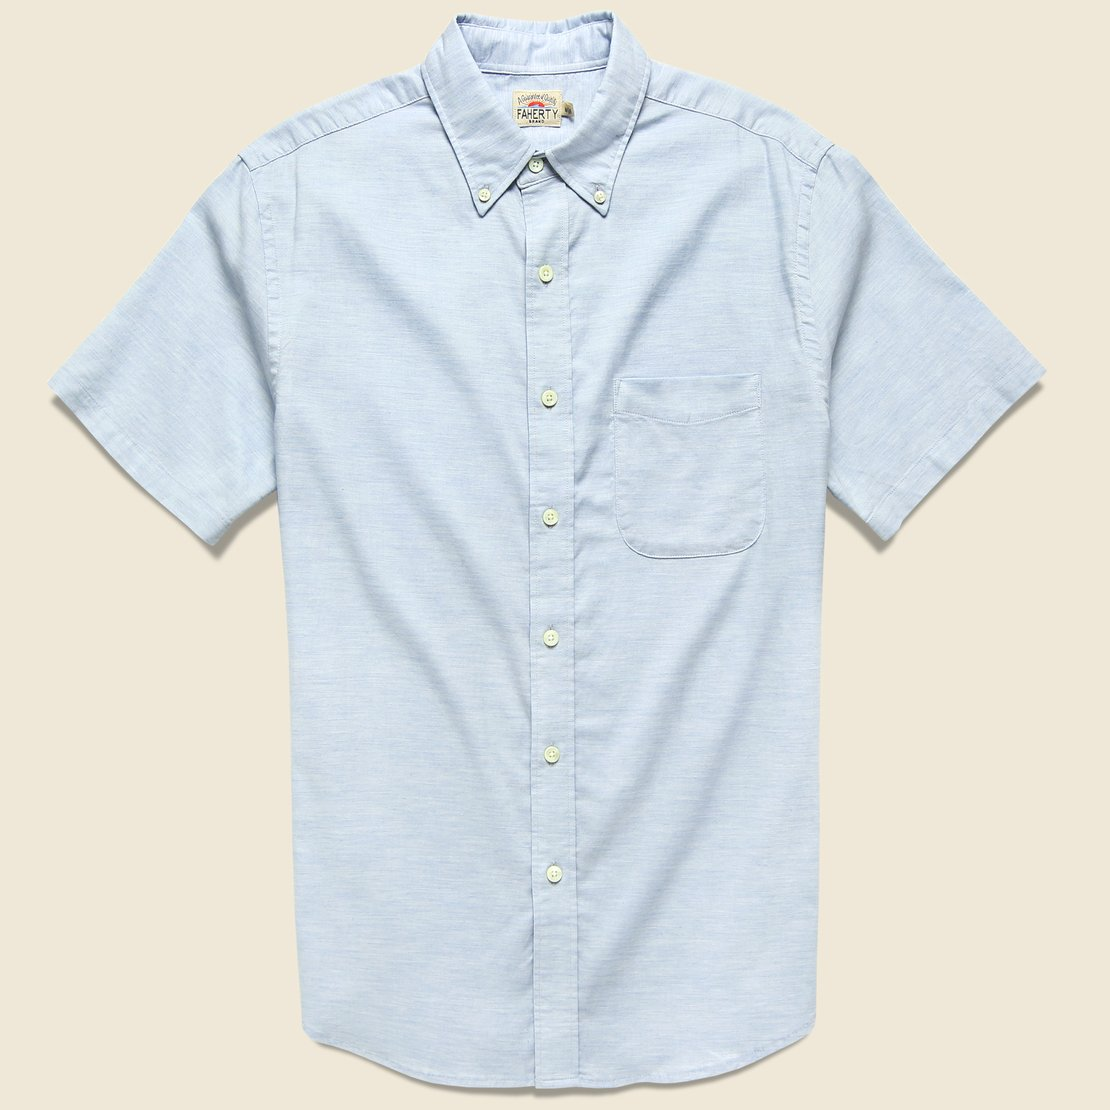 Faherty Stretch Oxford Shirt - Washed Blue